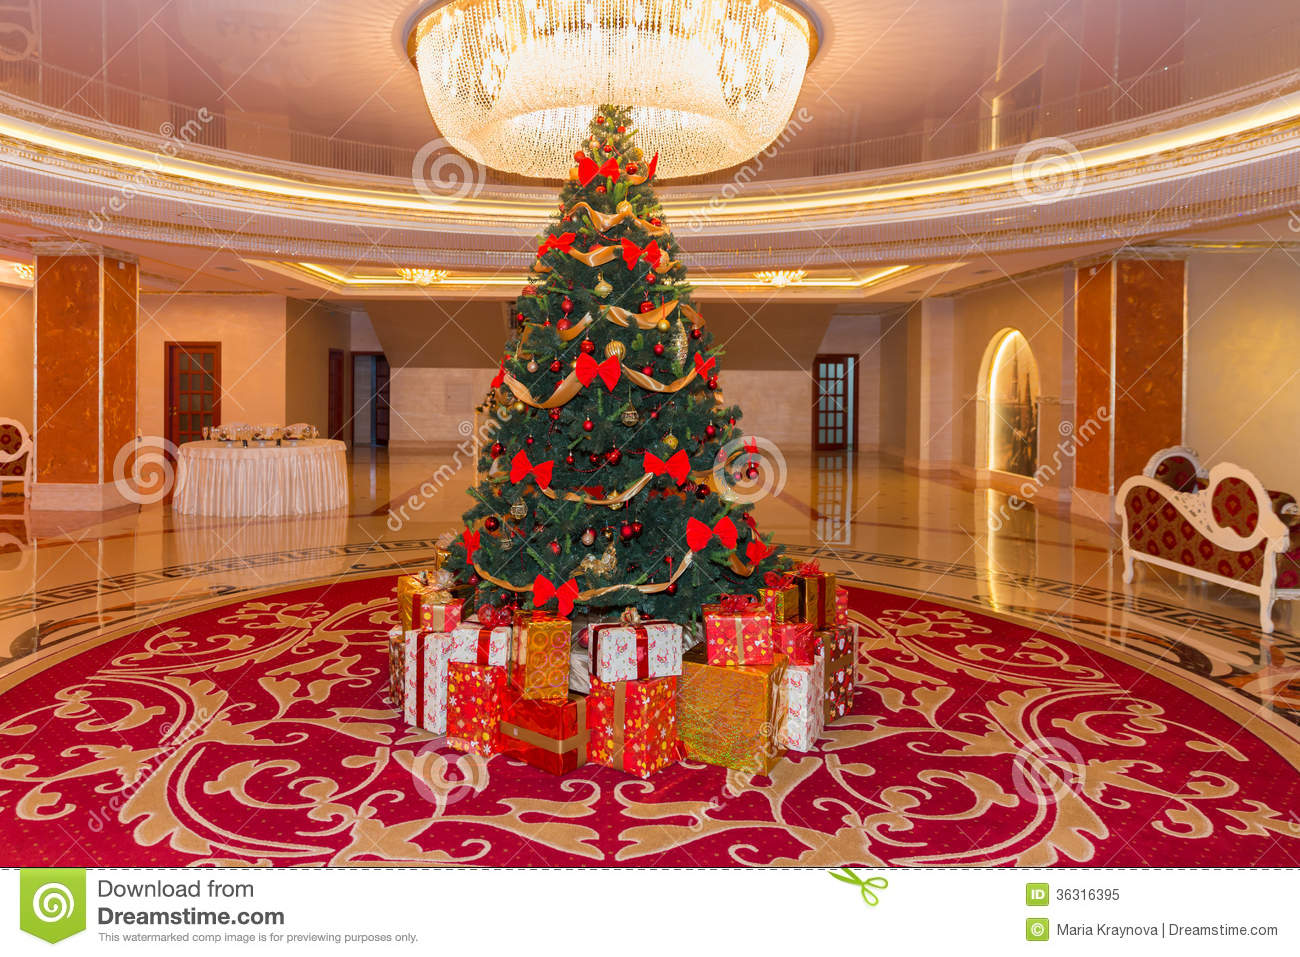 15 Artificial Christmas Tree